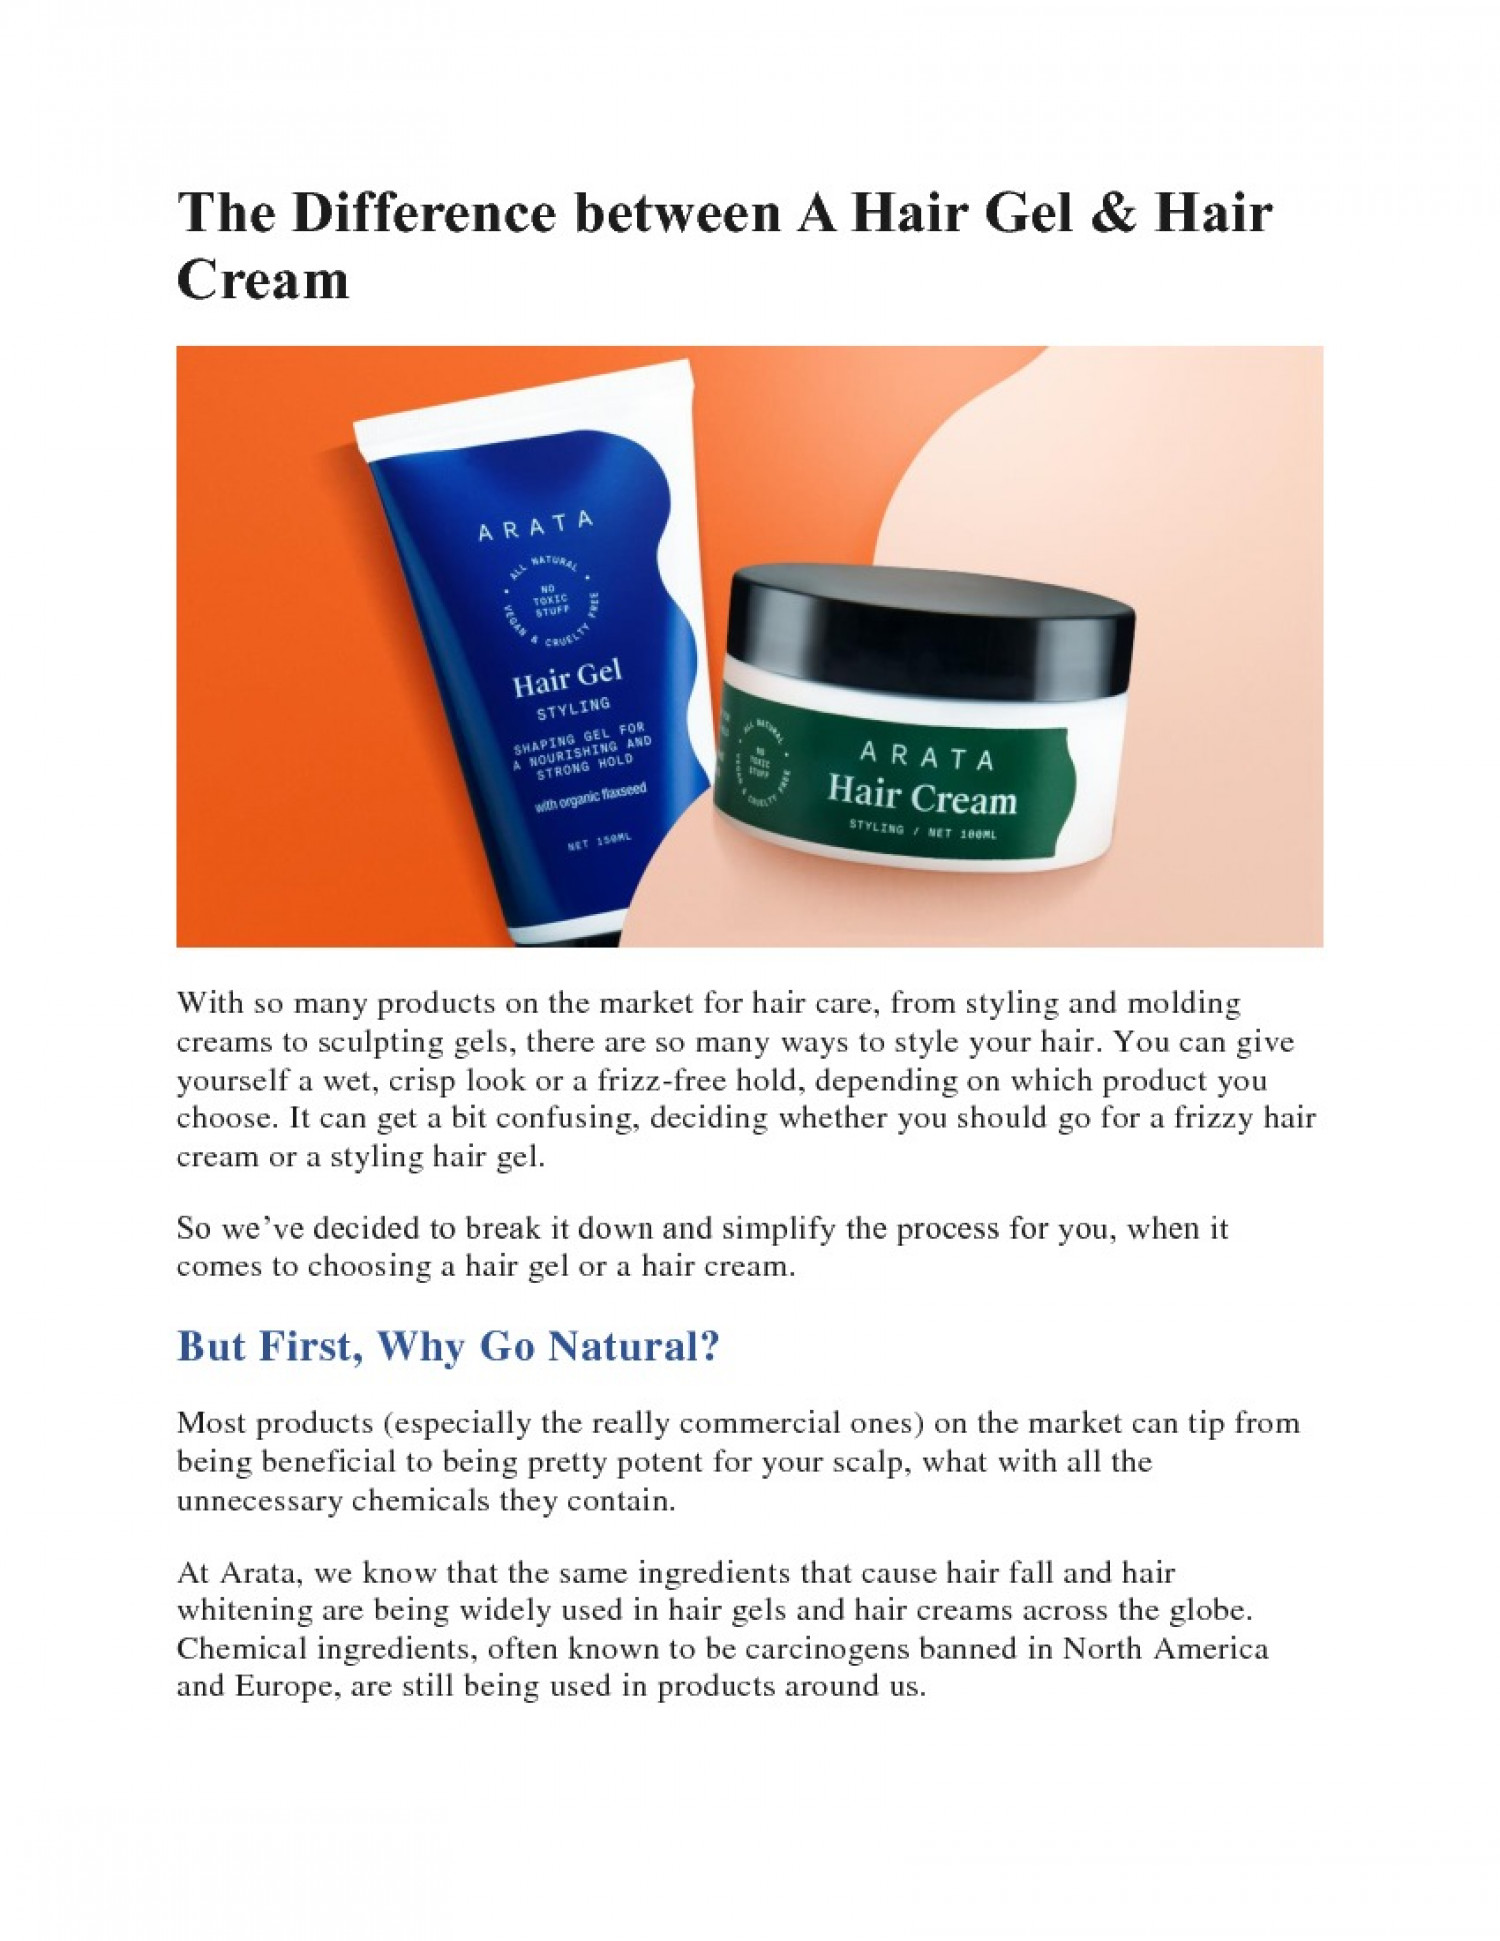 The Difference Between A Hair Gel & Hair Cream Infographic